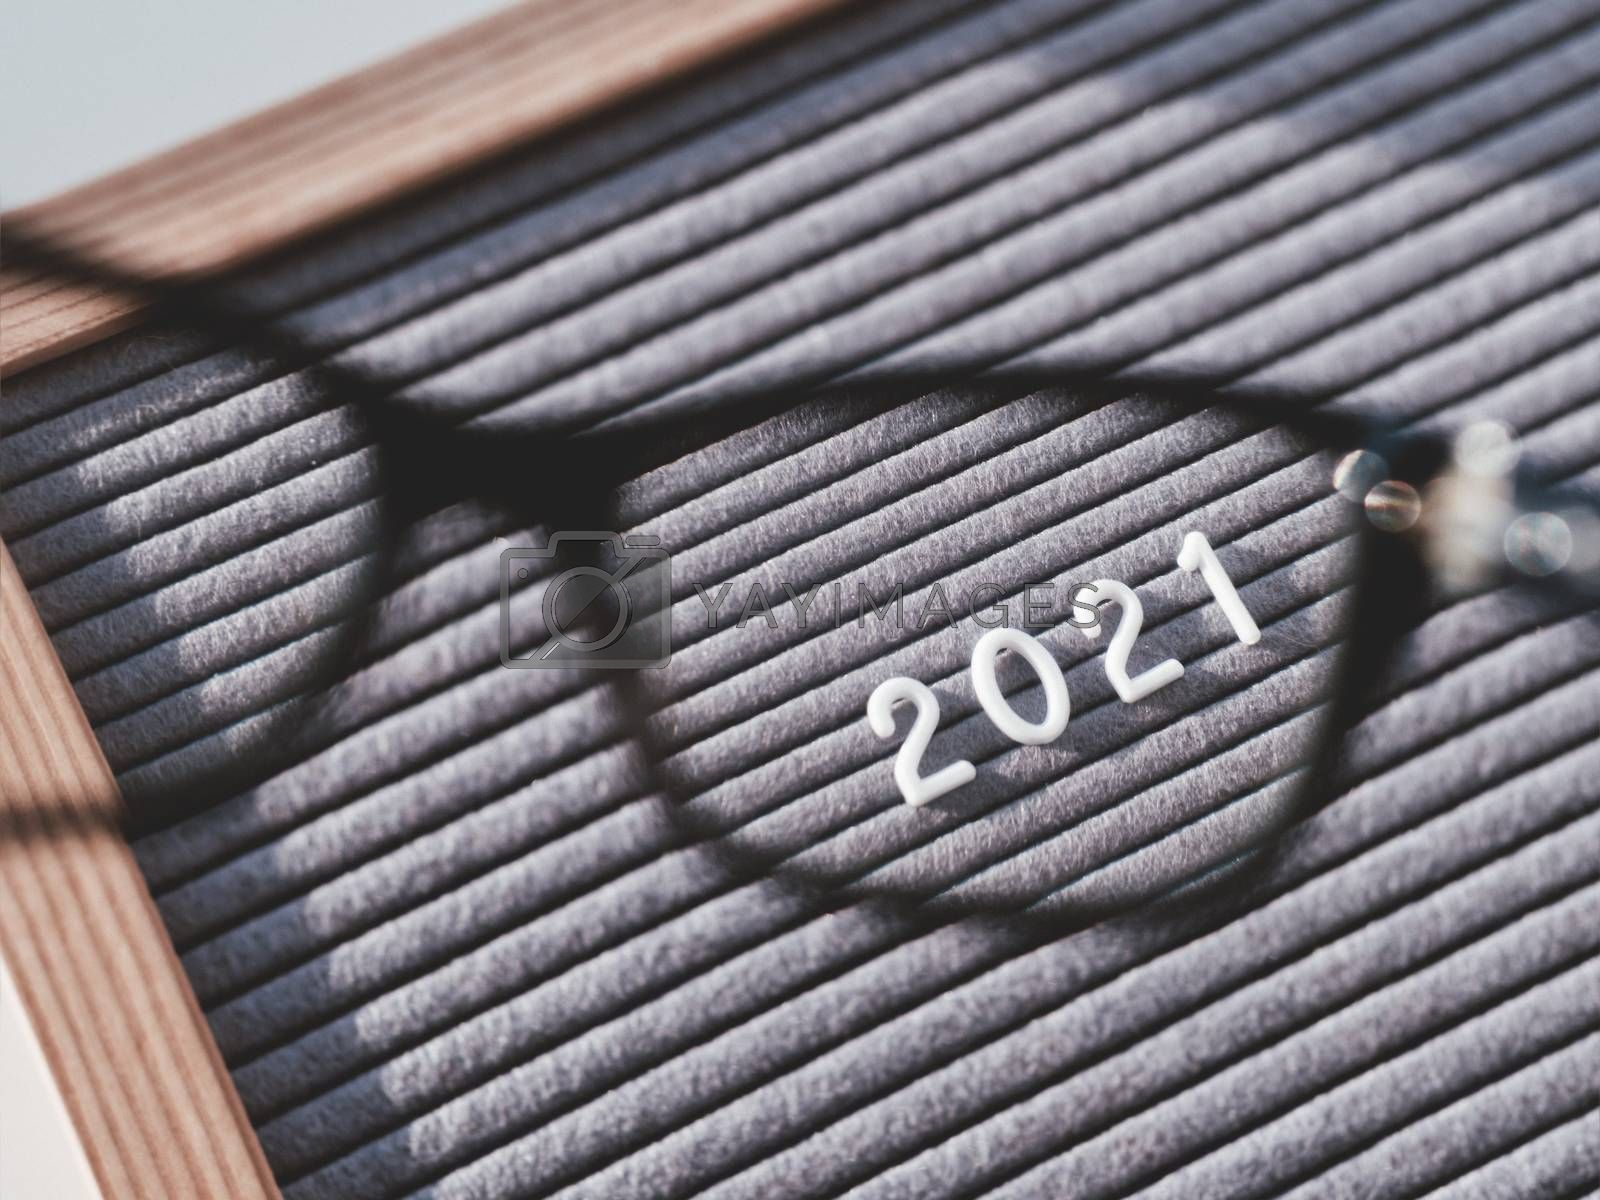 Top view on letterboard with numbers 2021 through eyeglasses. Flat lay concept of 2021 year results. 2021 review. Social, political or economical issue. Closer look on problems and achievements.